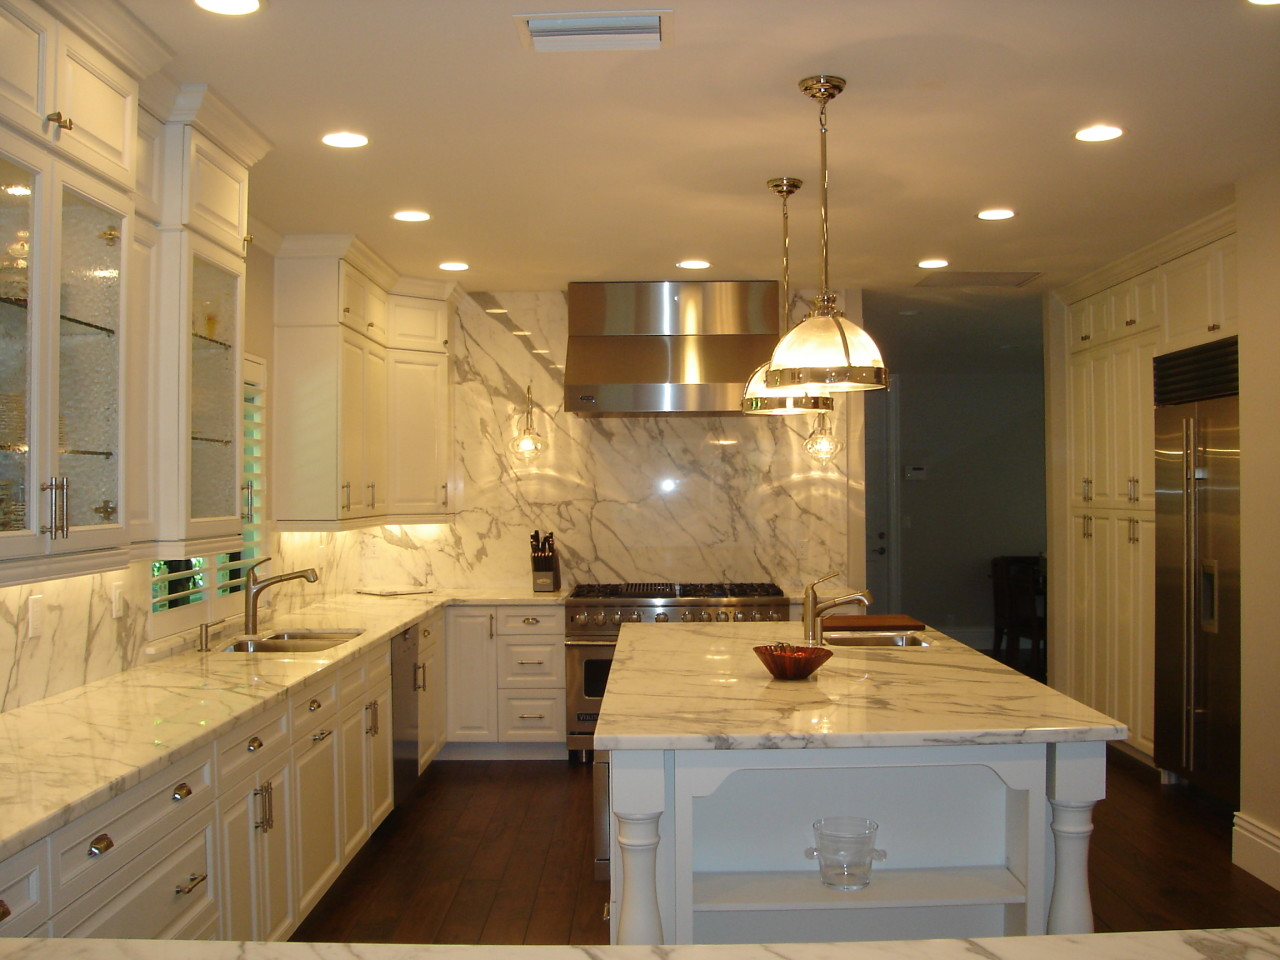 Transitional kitchen design bath kitchen creations south florida - Kitchens styles and designs ...